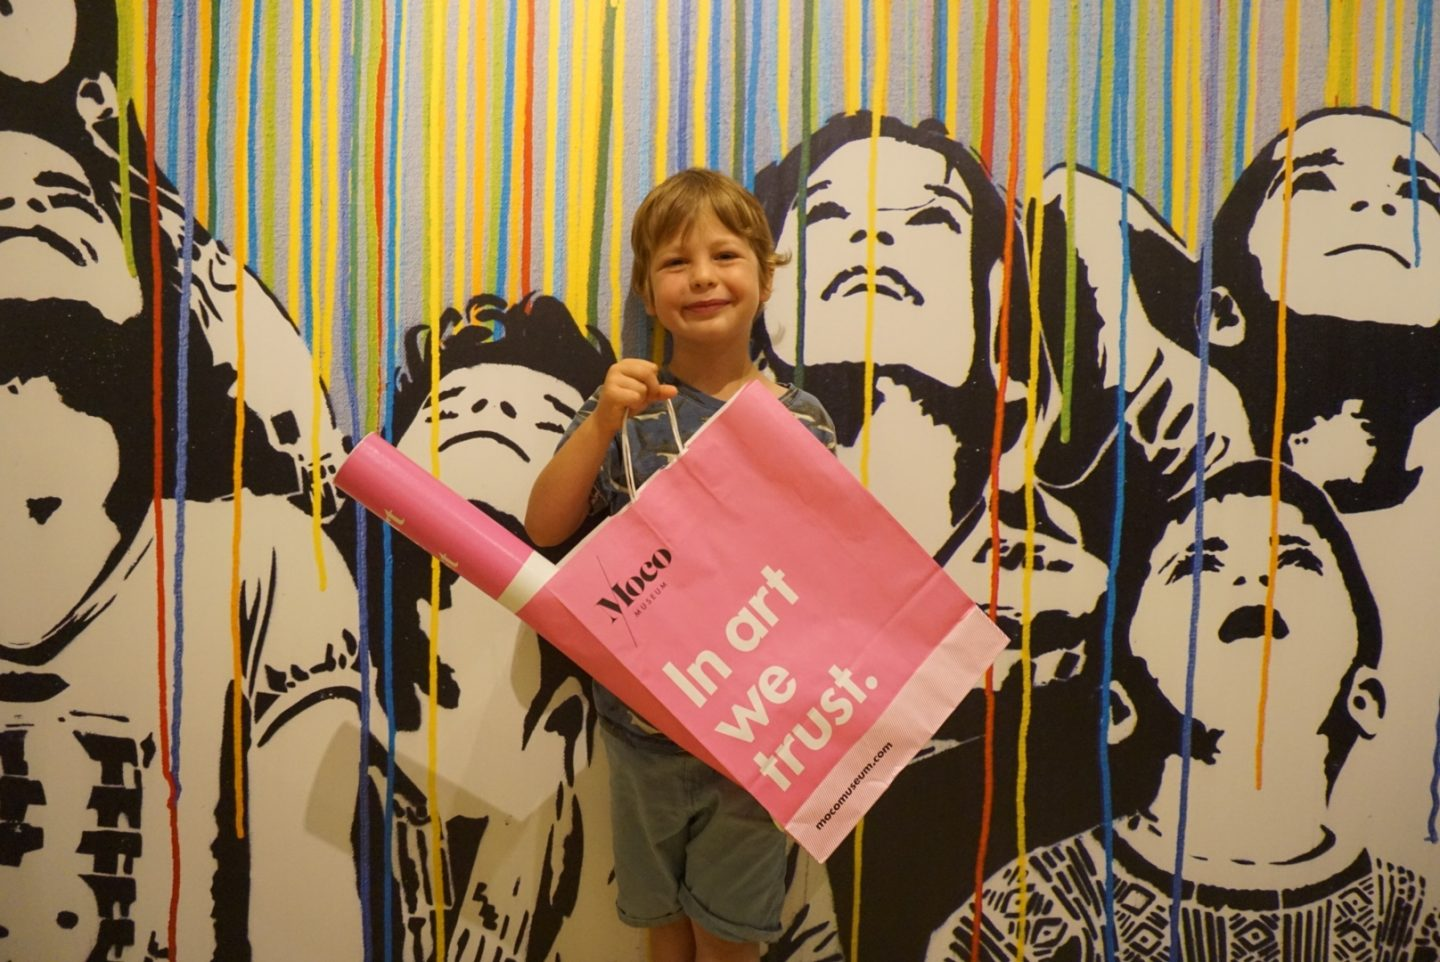 Museum Boy proudly holds up a paper bag in front of a grafitti backdrop at Moco Amsterdam